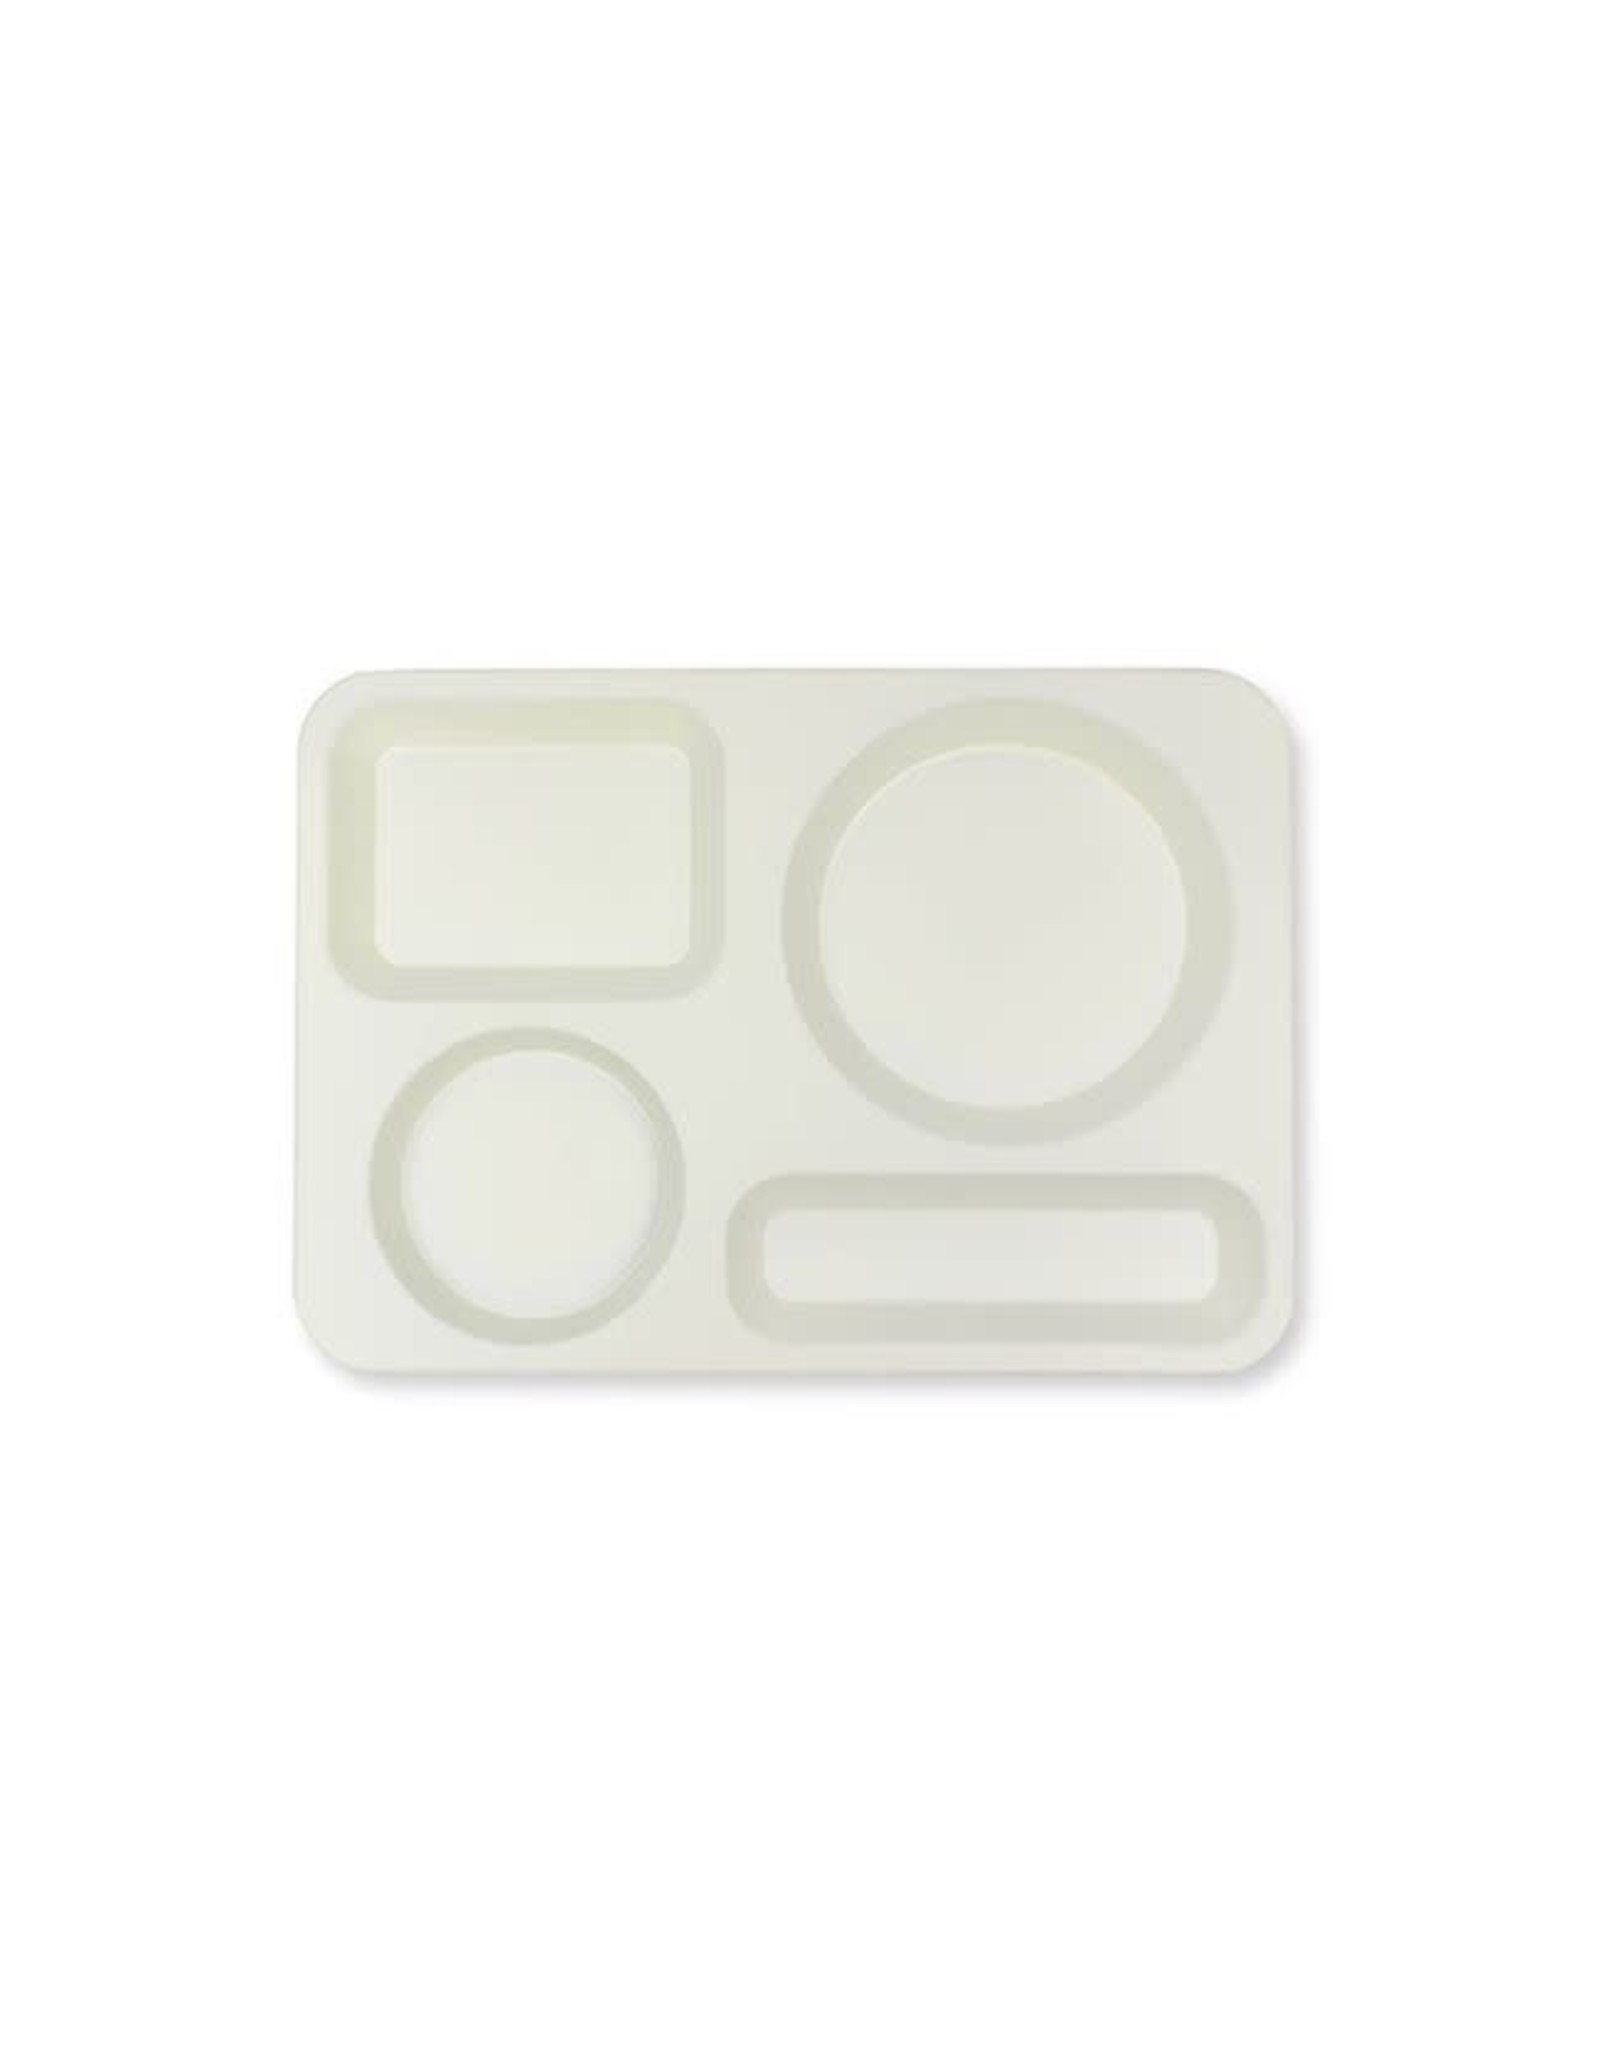 GSP GSP TSUBAME CAFE TRAY COLORS WHITE